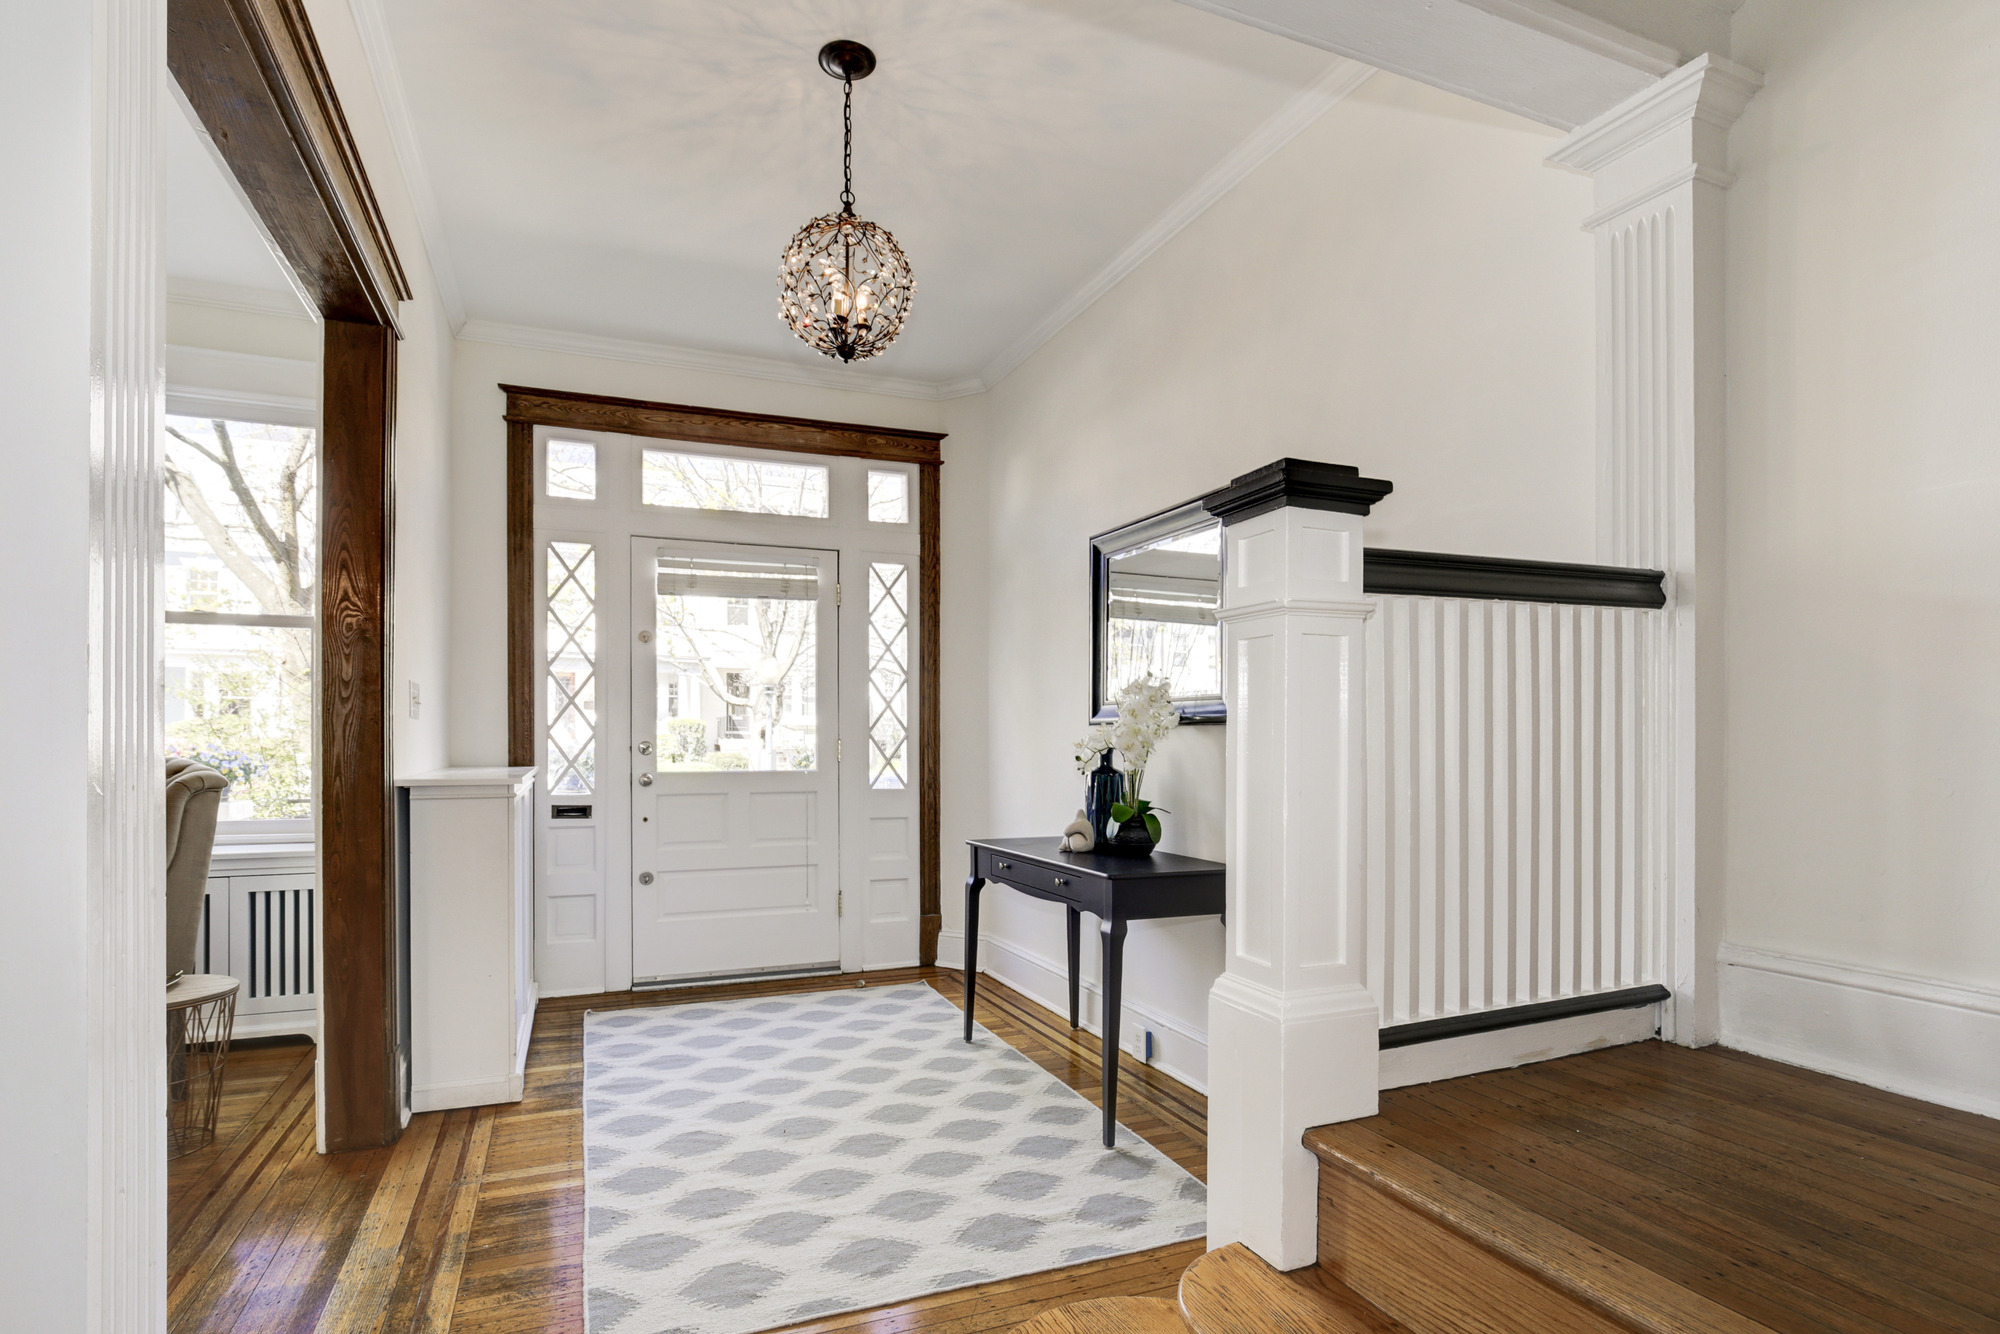 Foyer Luxury Zoo : Sheila mooney ty hreben presents th st nw